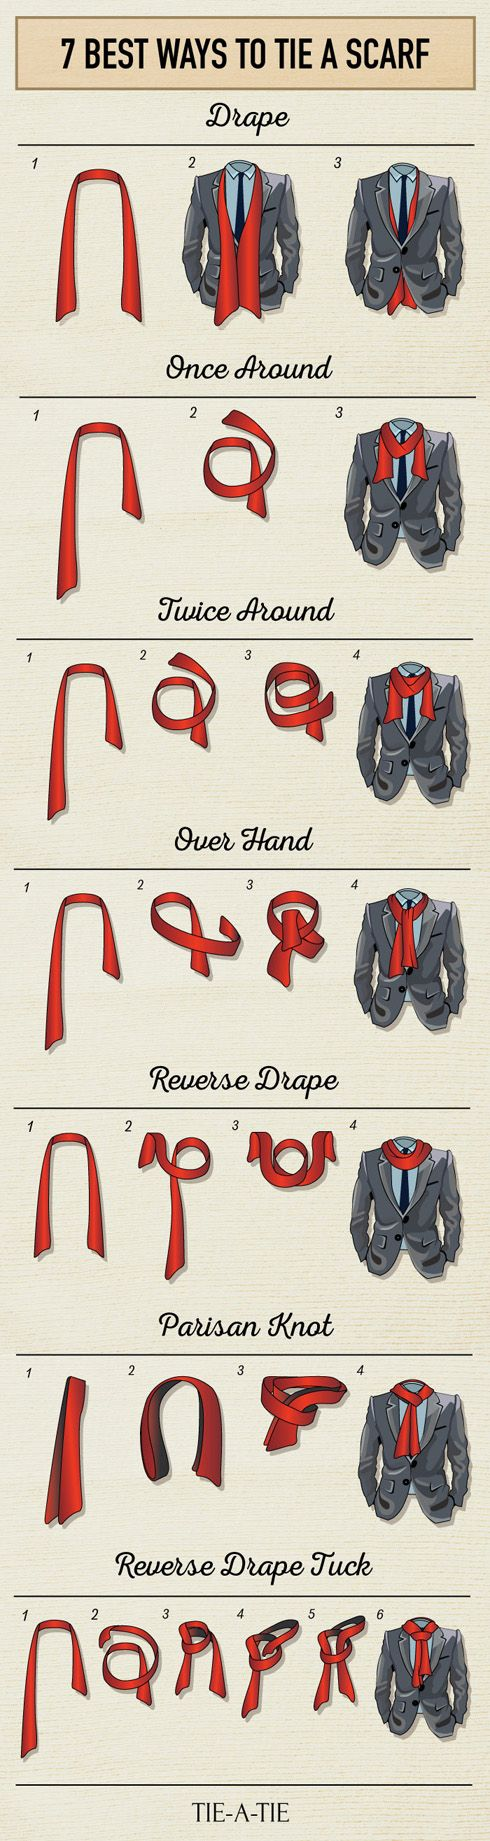 How to Tie a Scarf in Menswear - The 7 Best Ways to Tie a Men's Scarf ---> https://goo.gl/gJdiXV